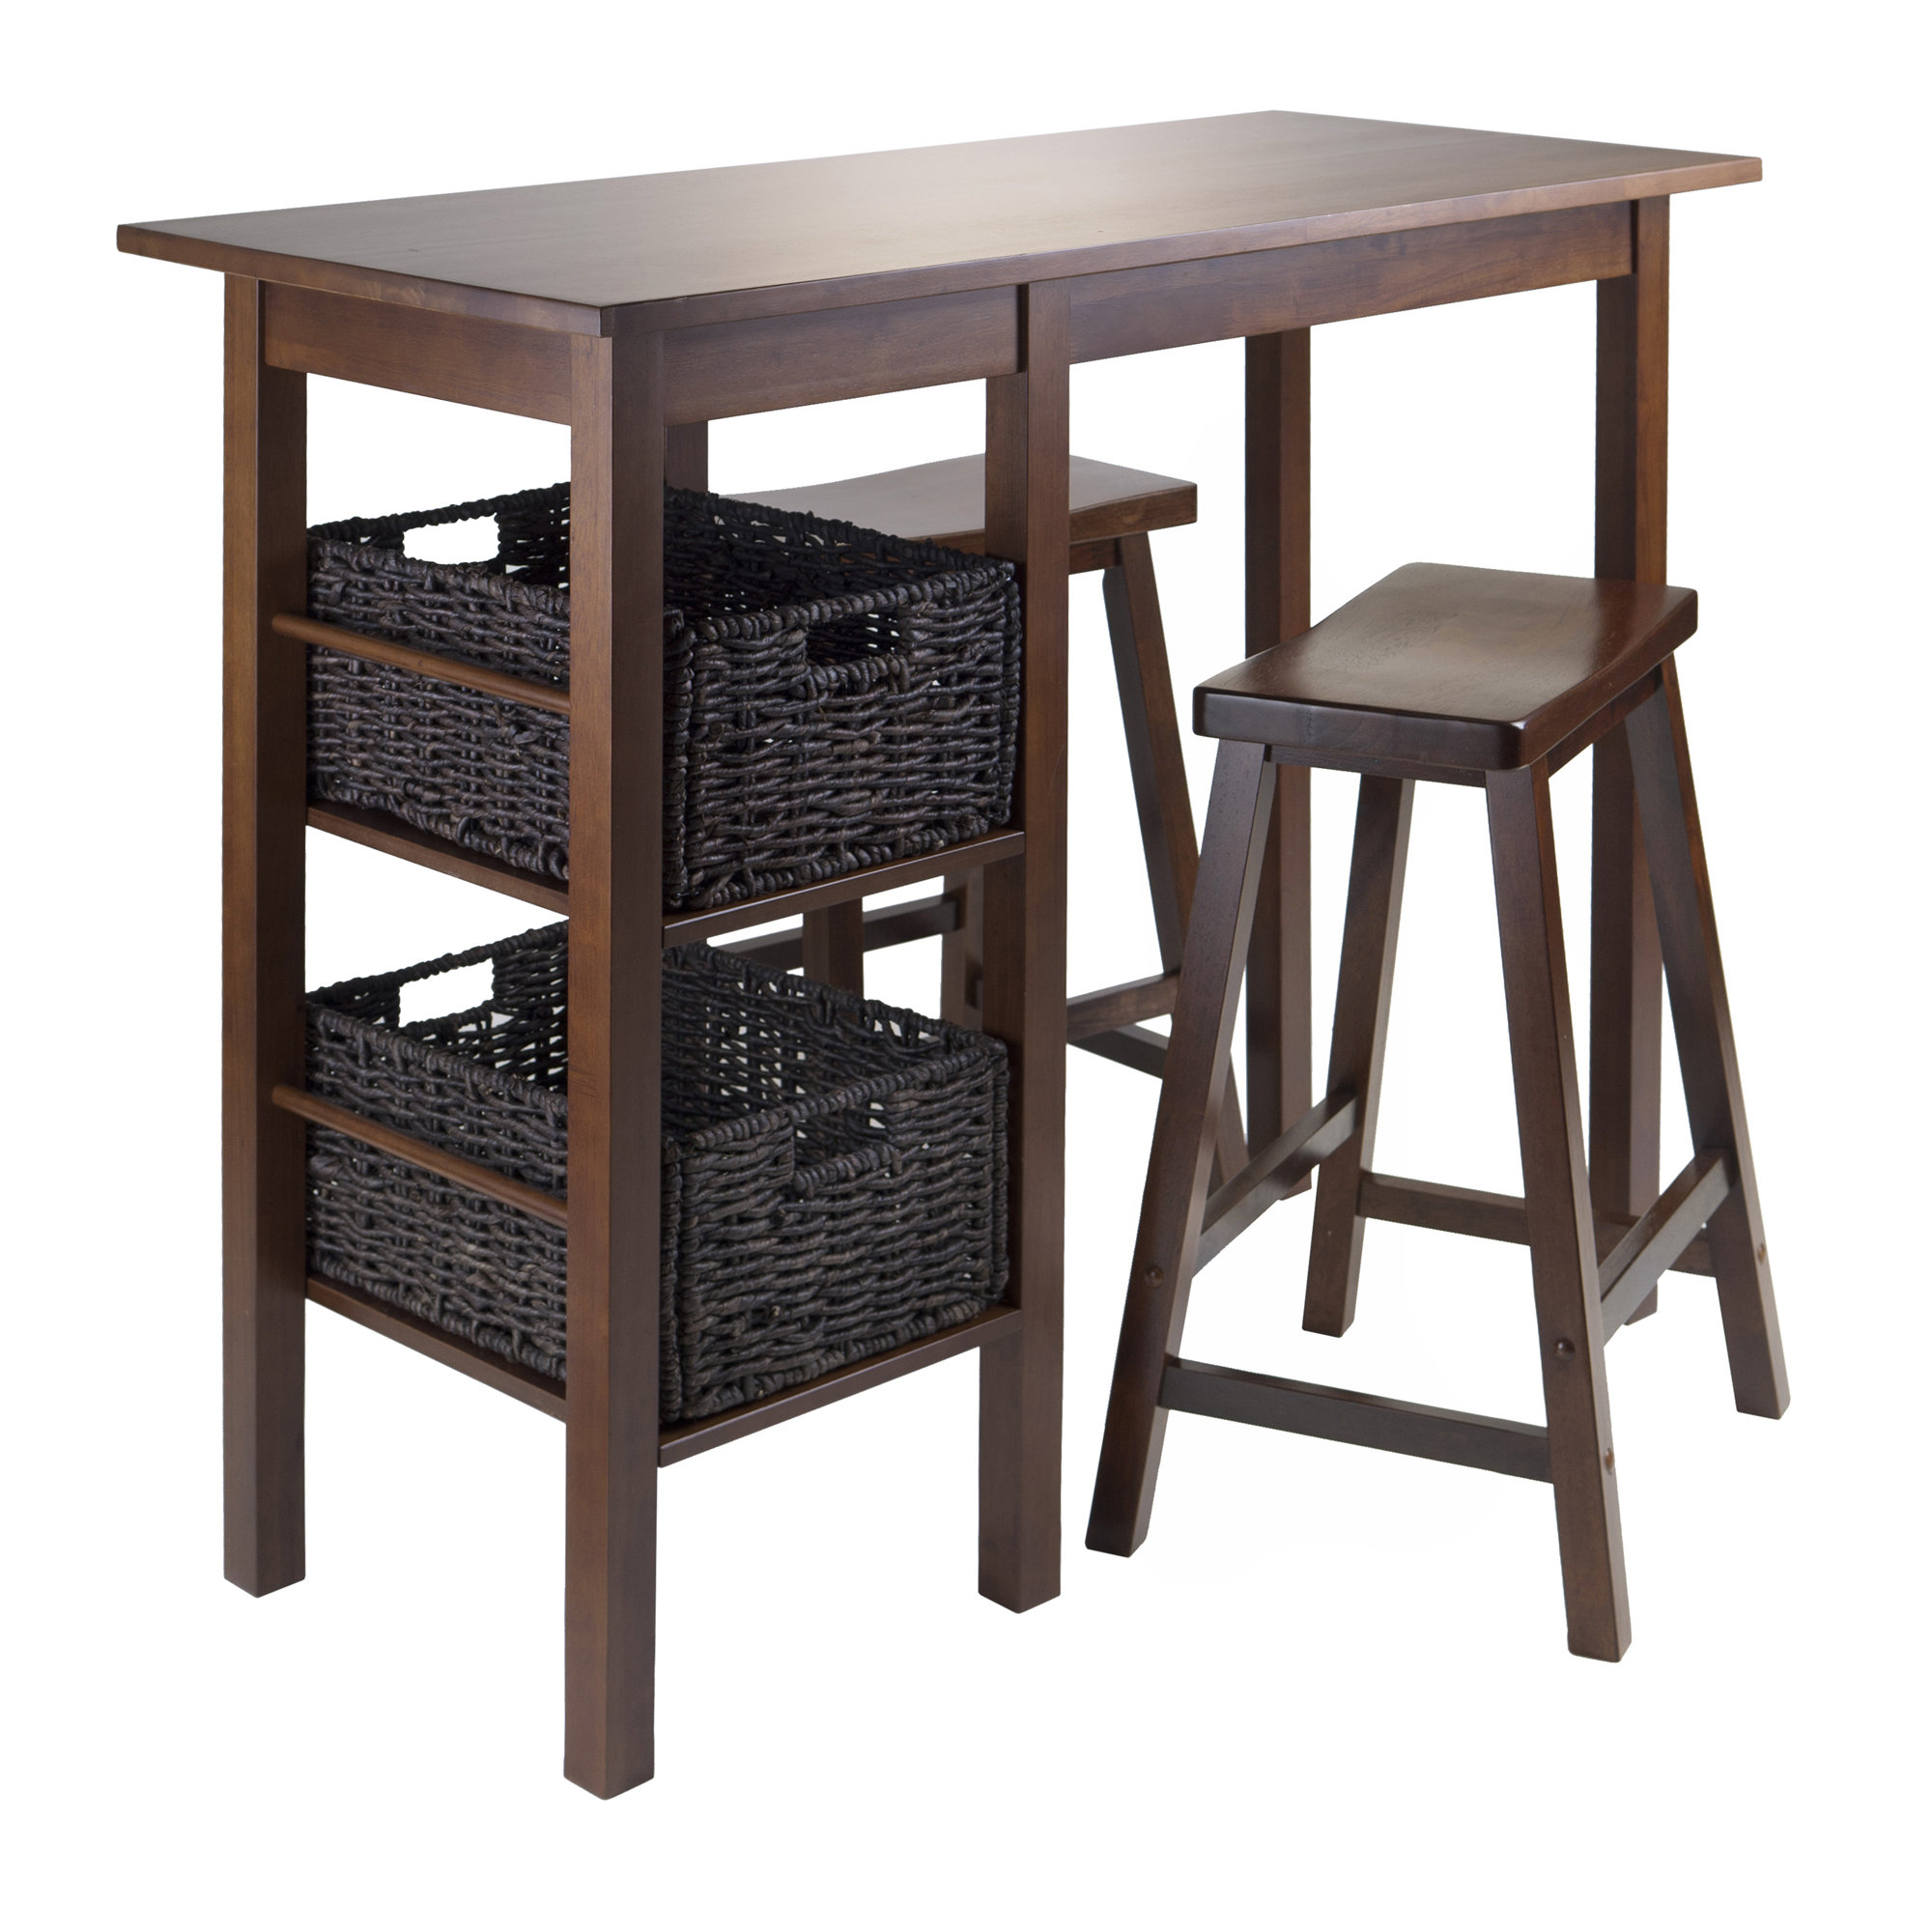 Wayfair Intended For Poynter 3 Piece Drop Leaf Dining Sets (View 12 of 25)